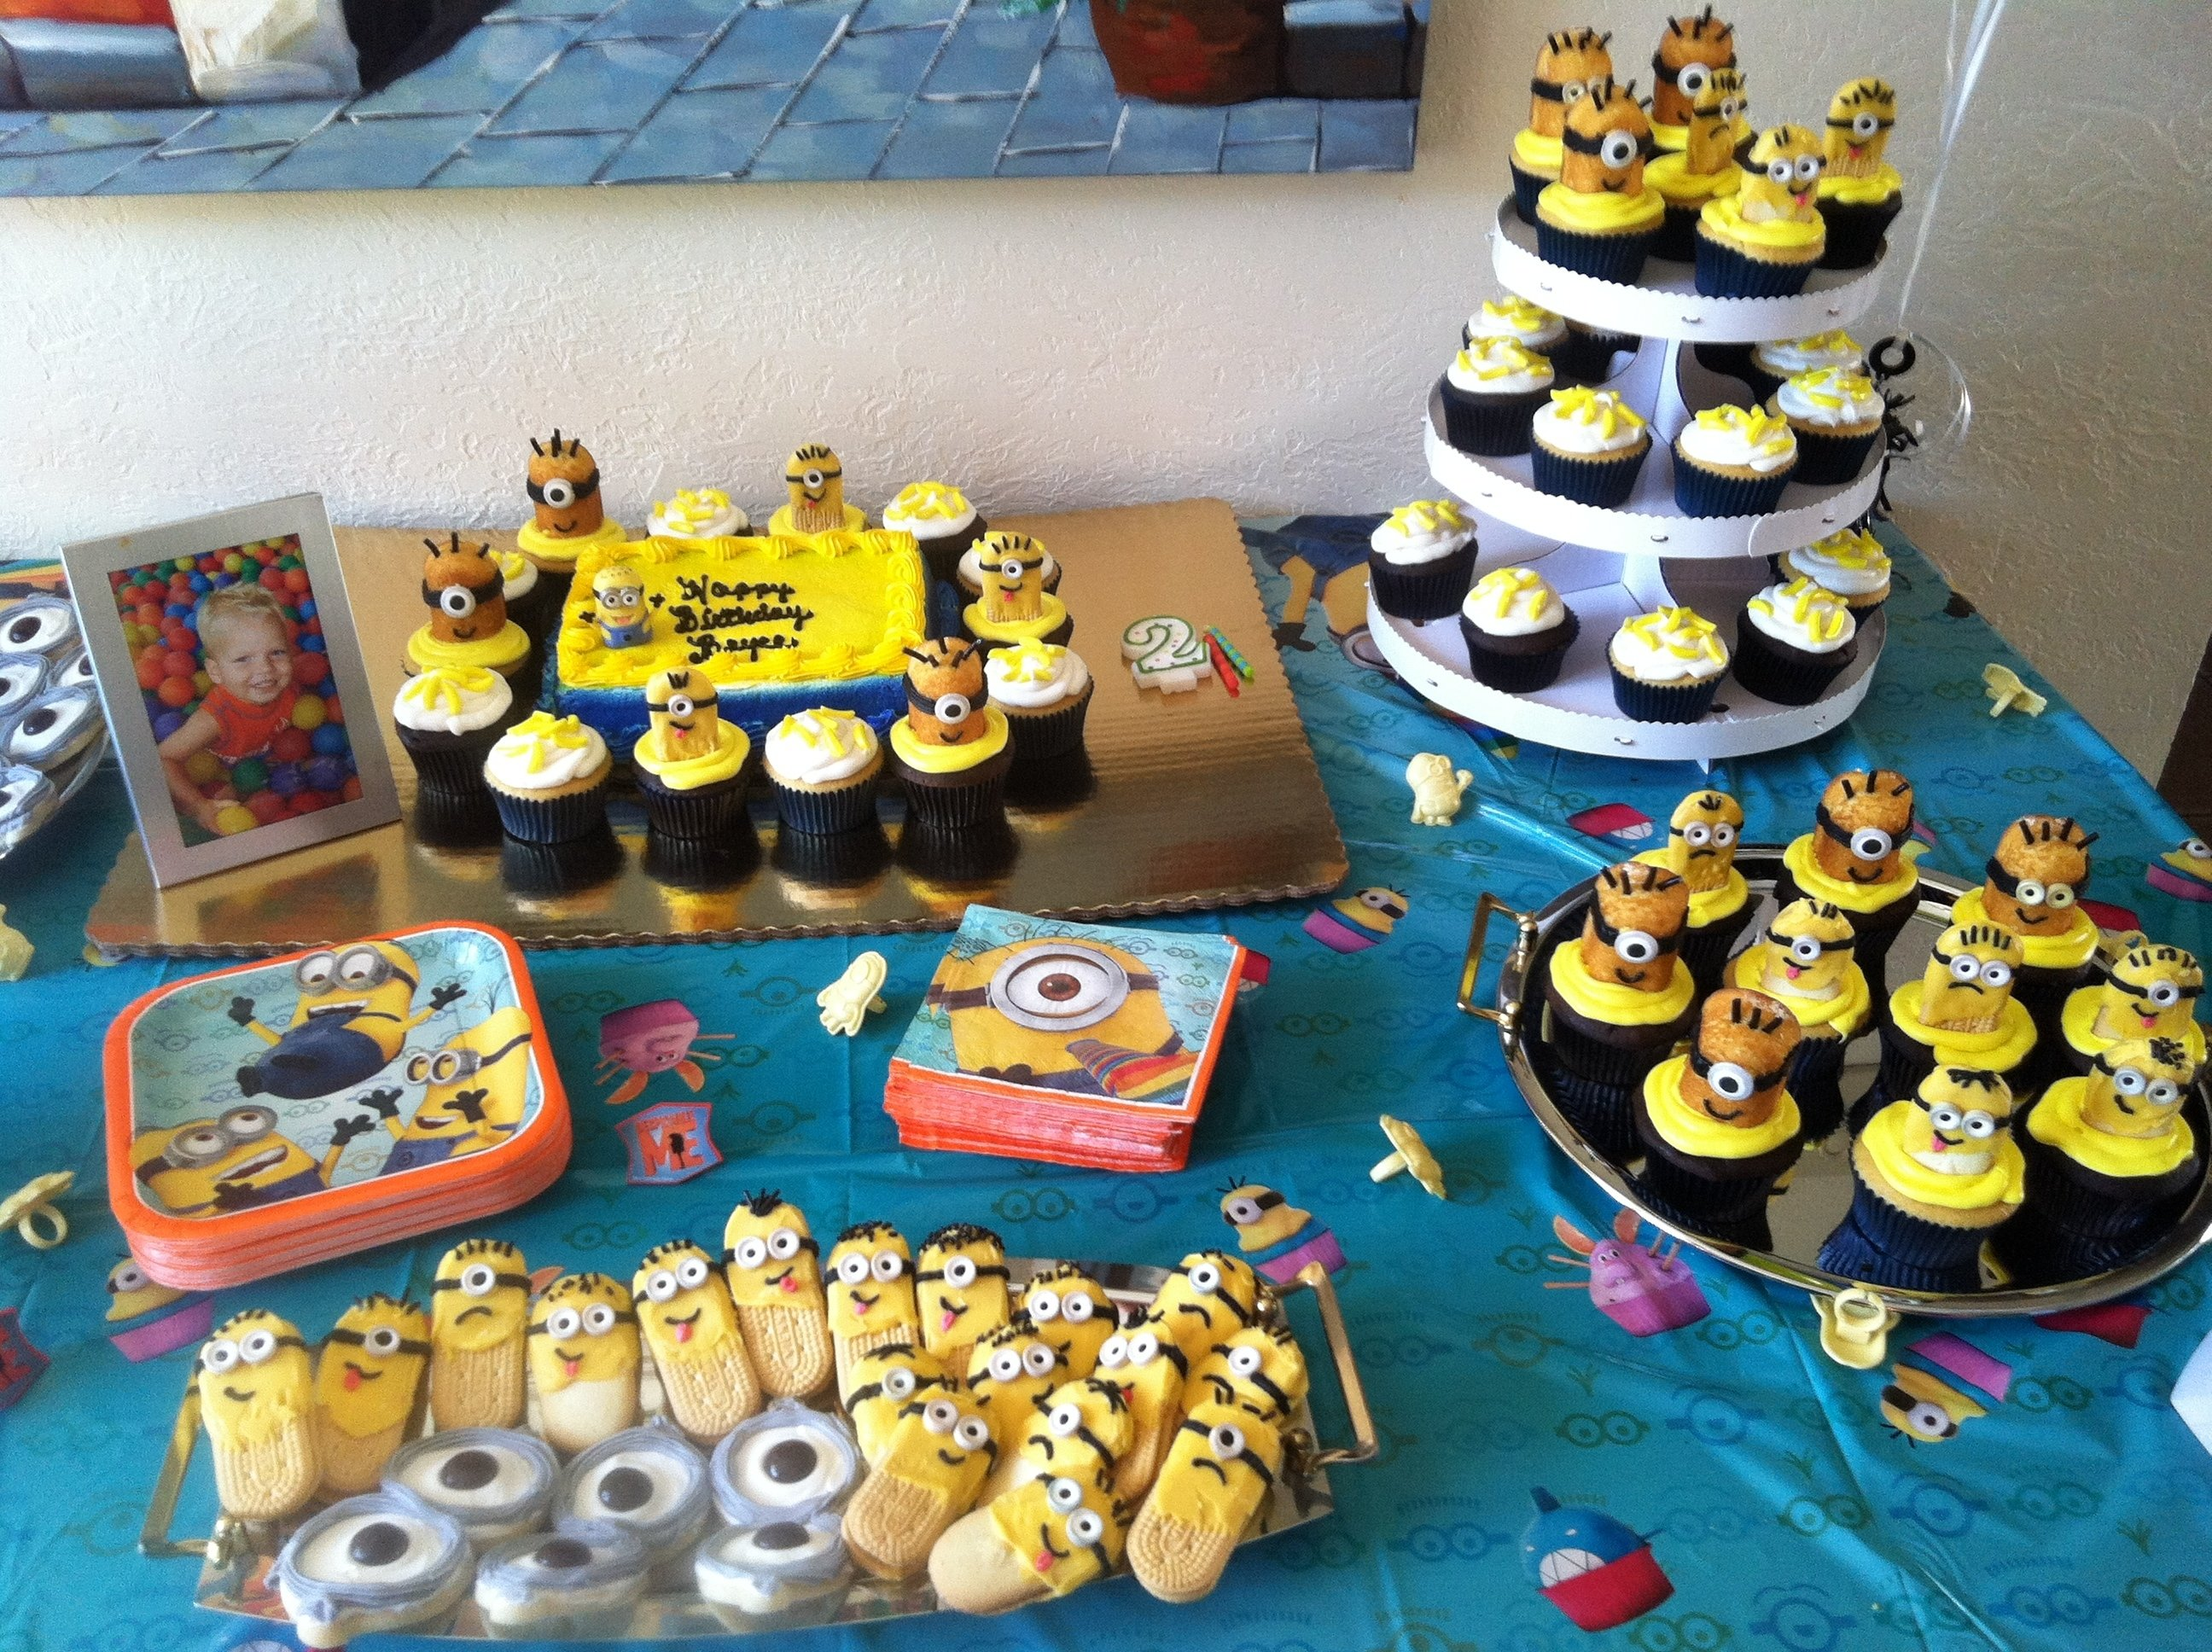 10 Lovable Party Ideas For A 2 Year Old themes birthday 2 year old birthday party ideas on a budget also 2 8